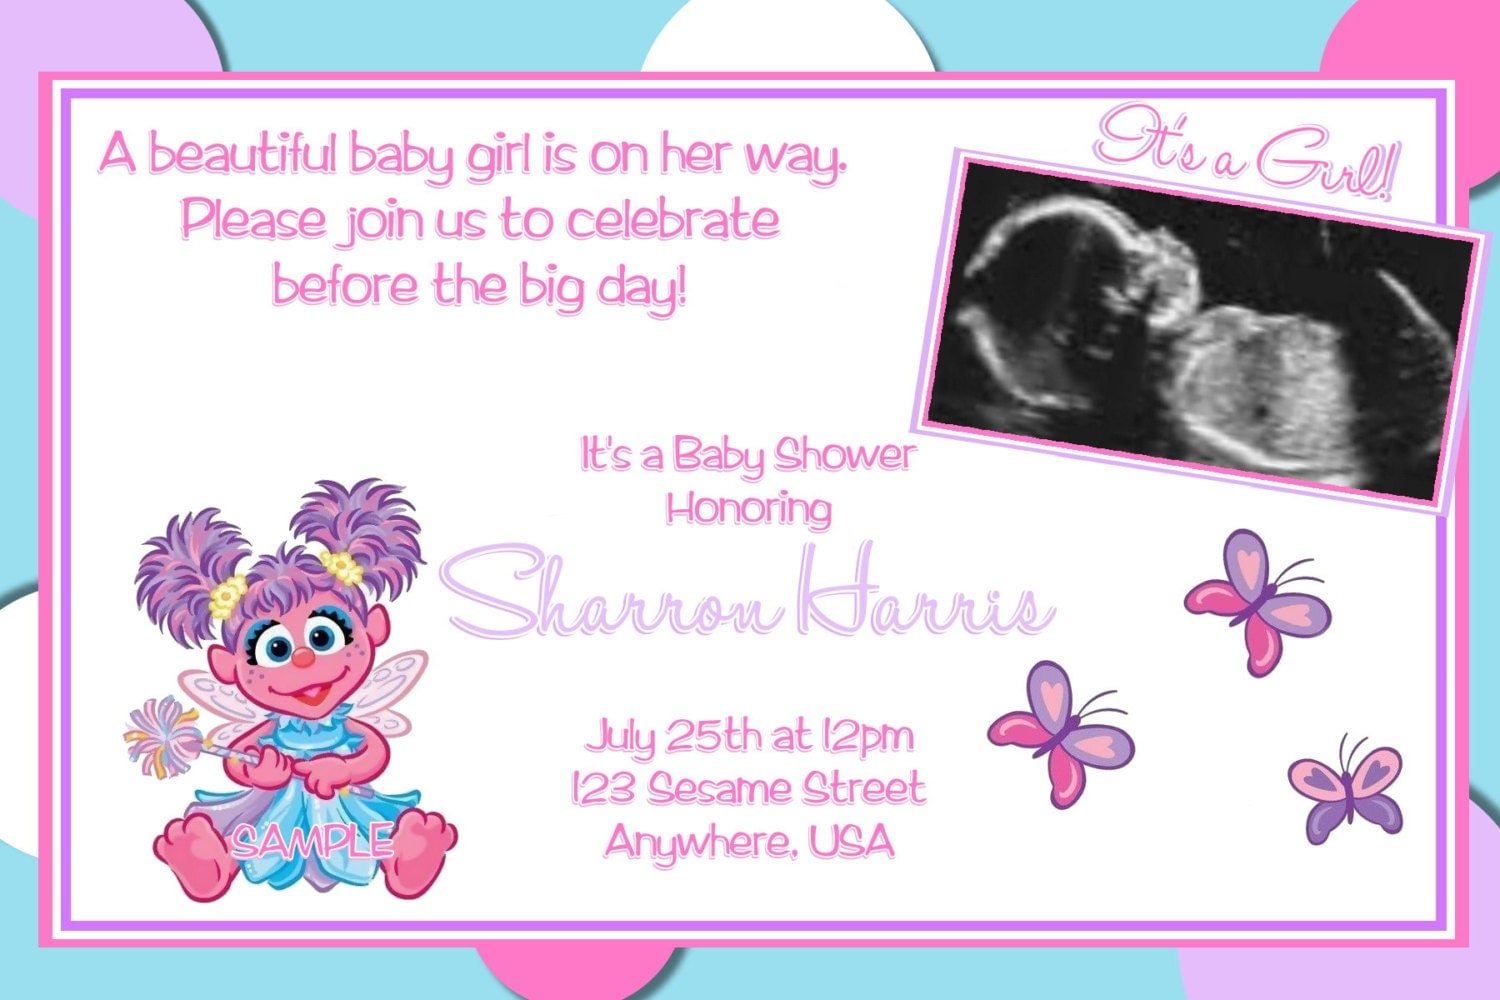 Abby cadabby sesame street baby shower invitations free - Sesame street baby shower ...